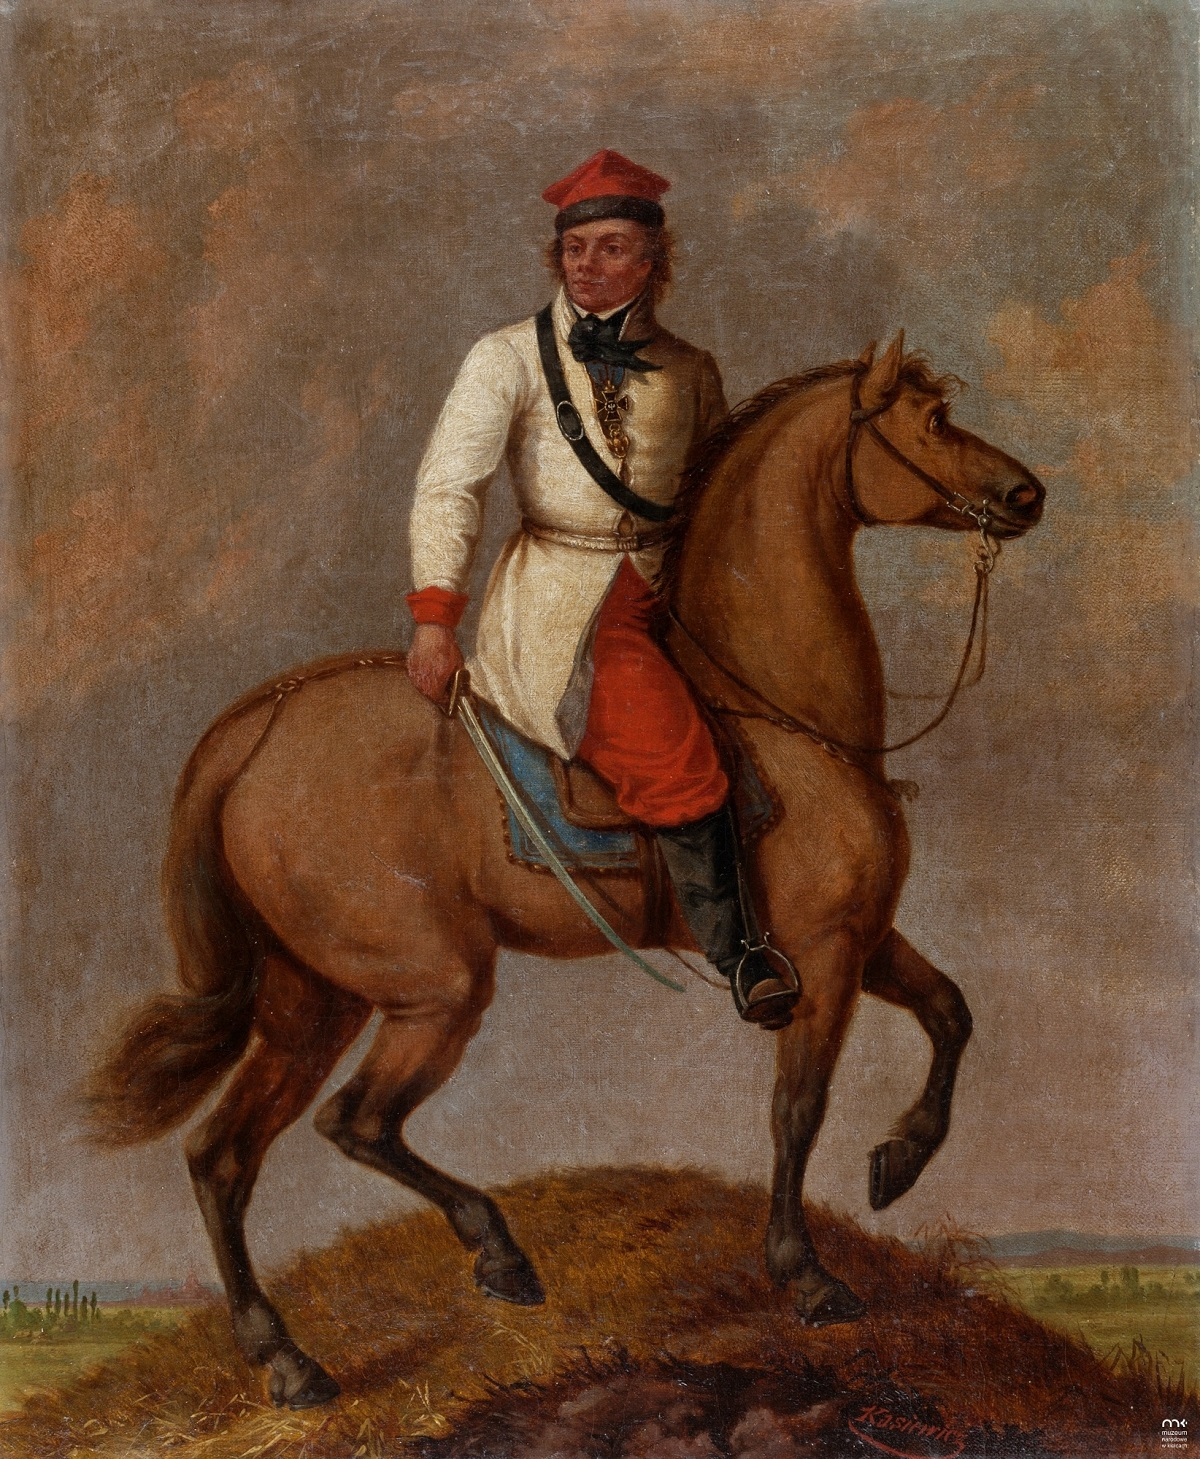 Kosciuszko on Horseback